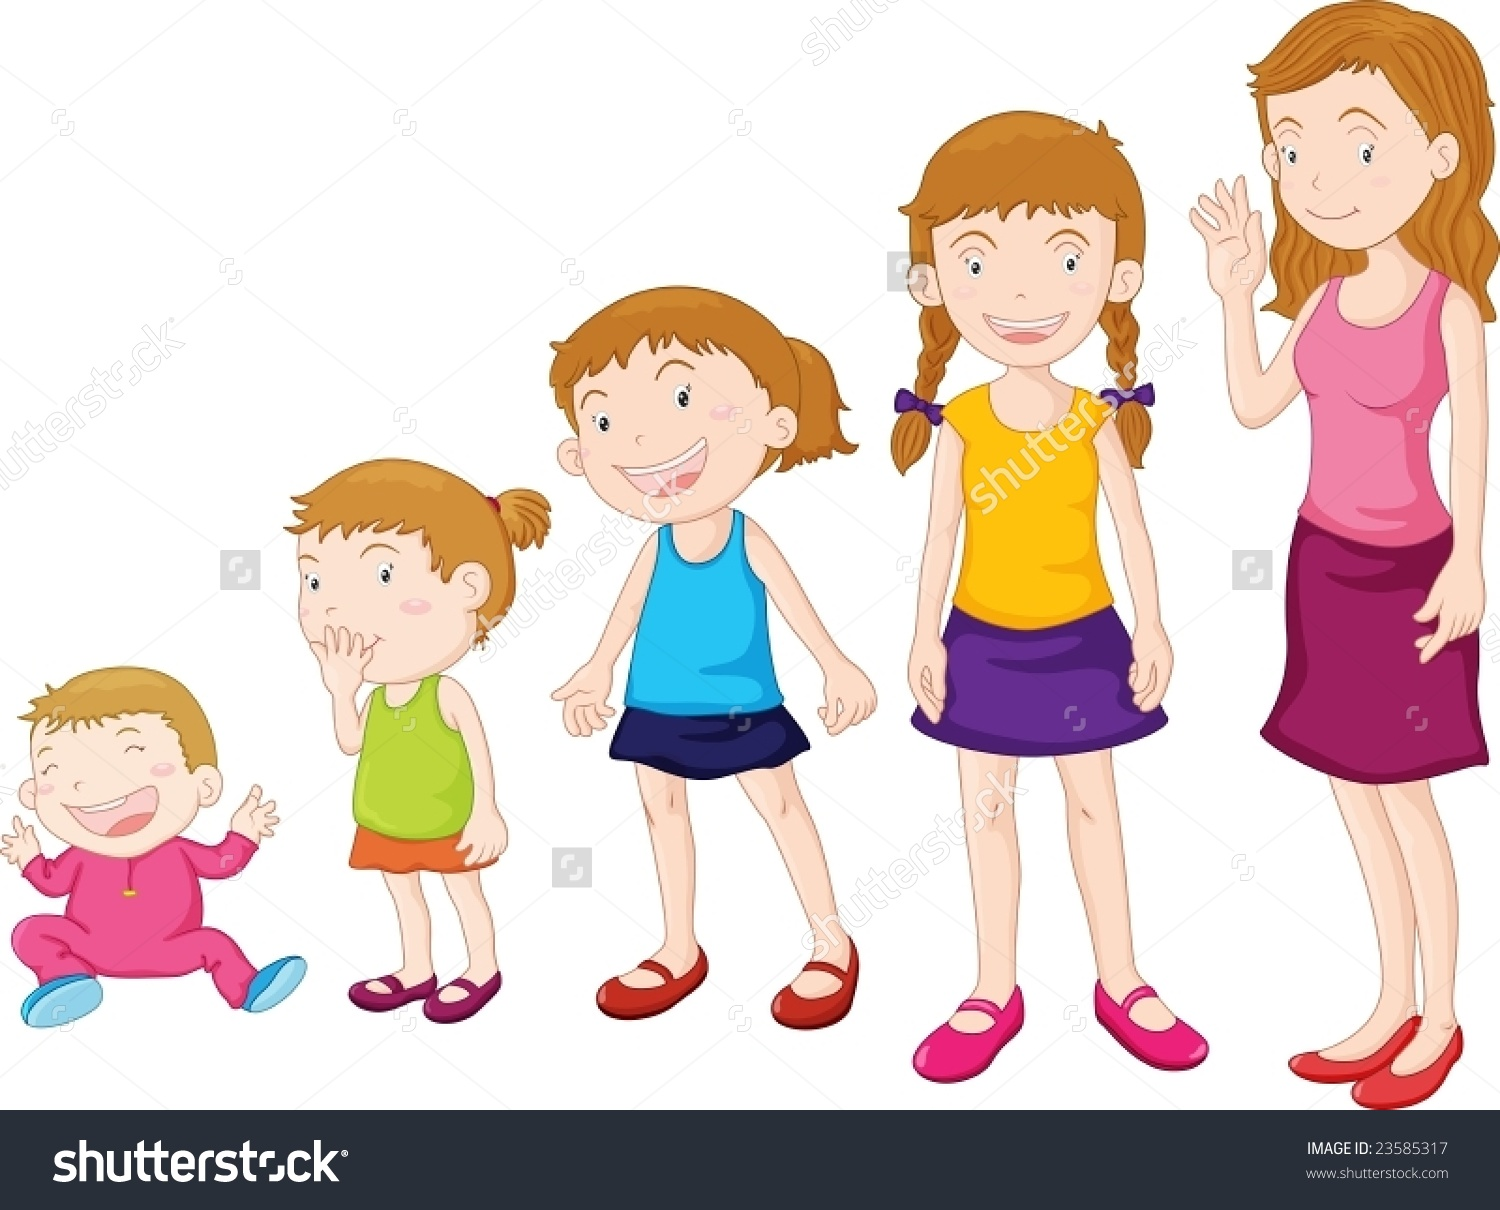 Quotes About Growth Of A Child 34 Quotes